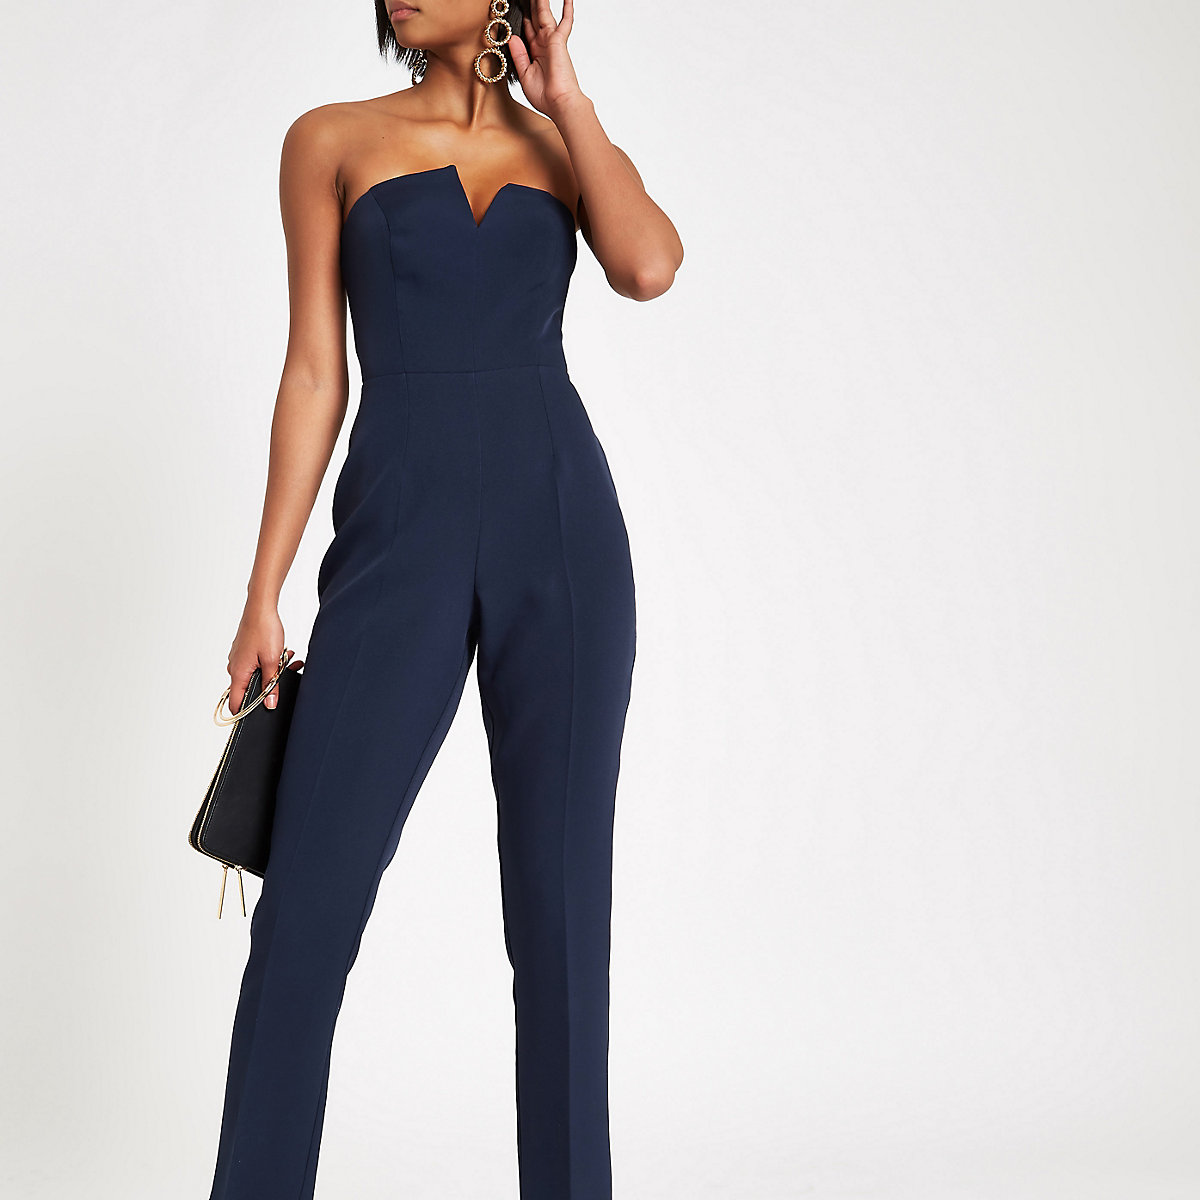 Navy bandeau V trim jumpsuit